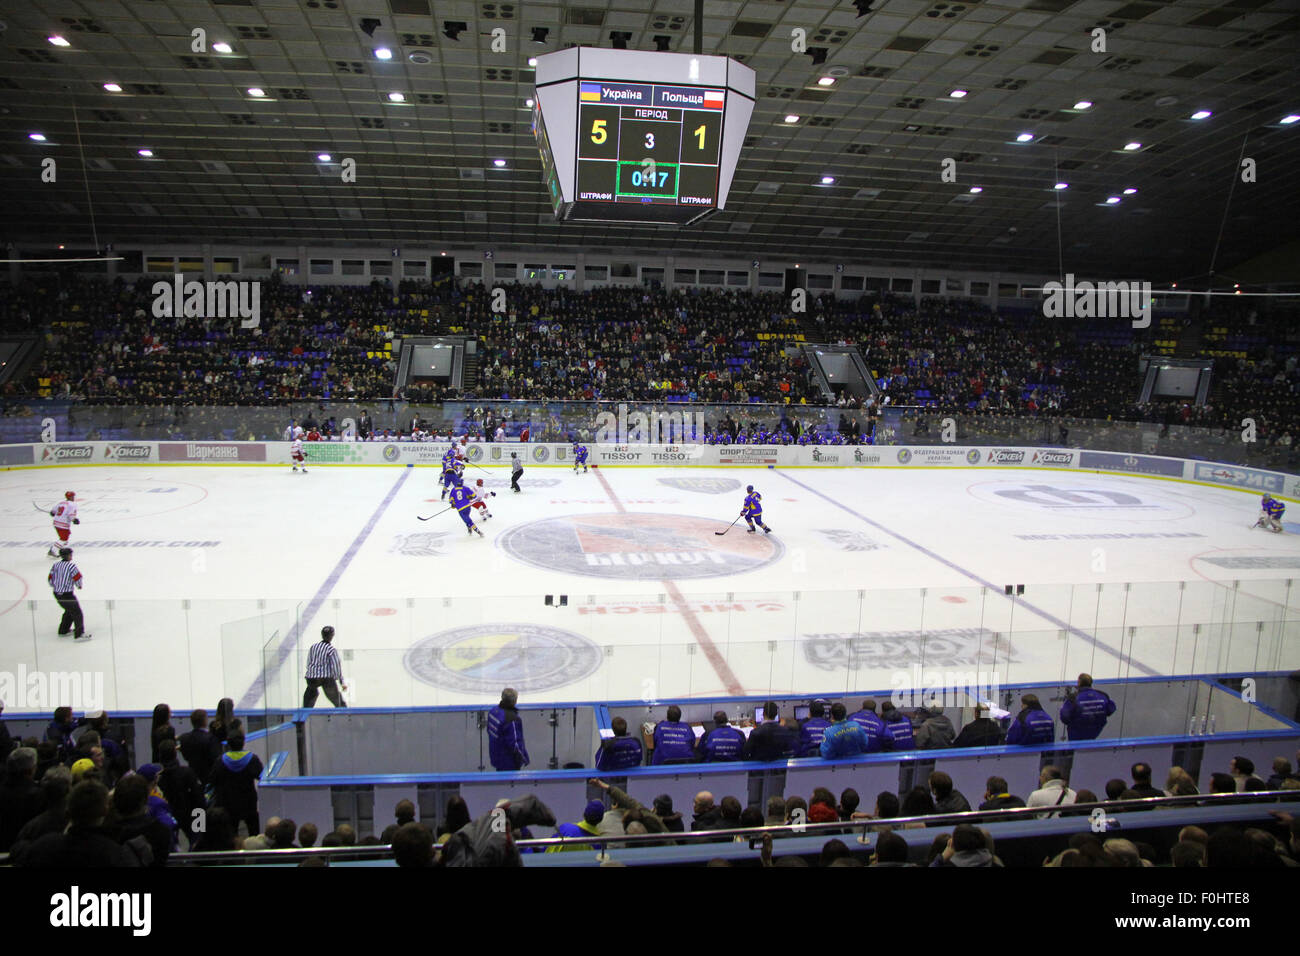 KYIV, UKRAINE - NOVEMBER 11, 2012: 'Palats Sportu' Arena during ice-hockey pre-olympic qualification game - Stock Image